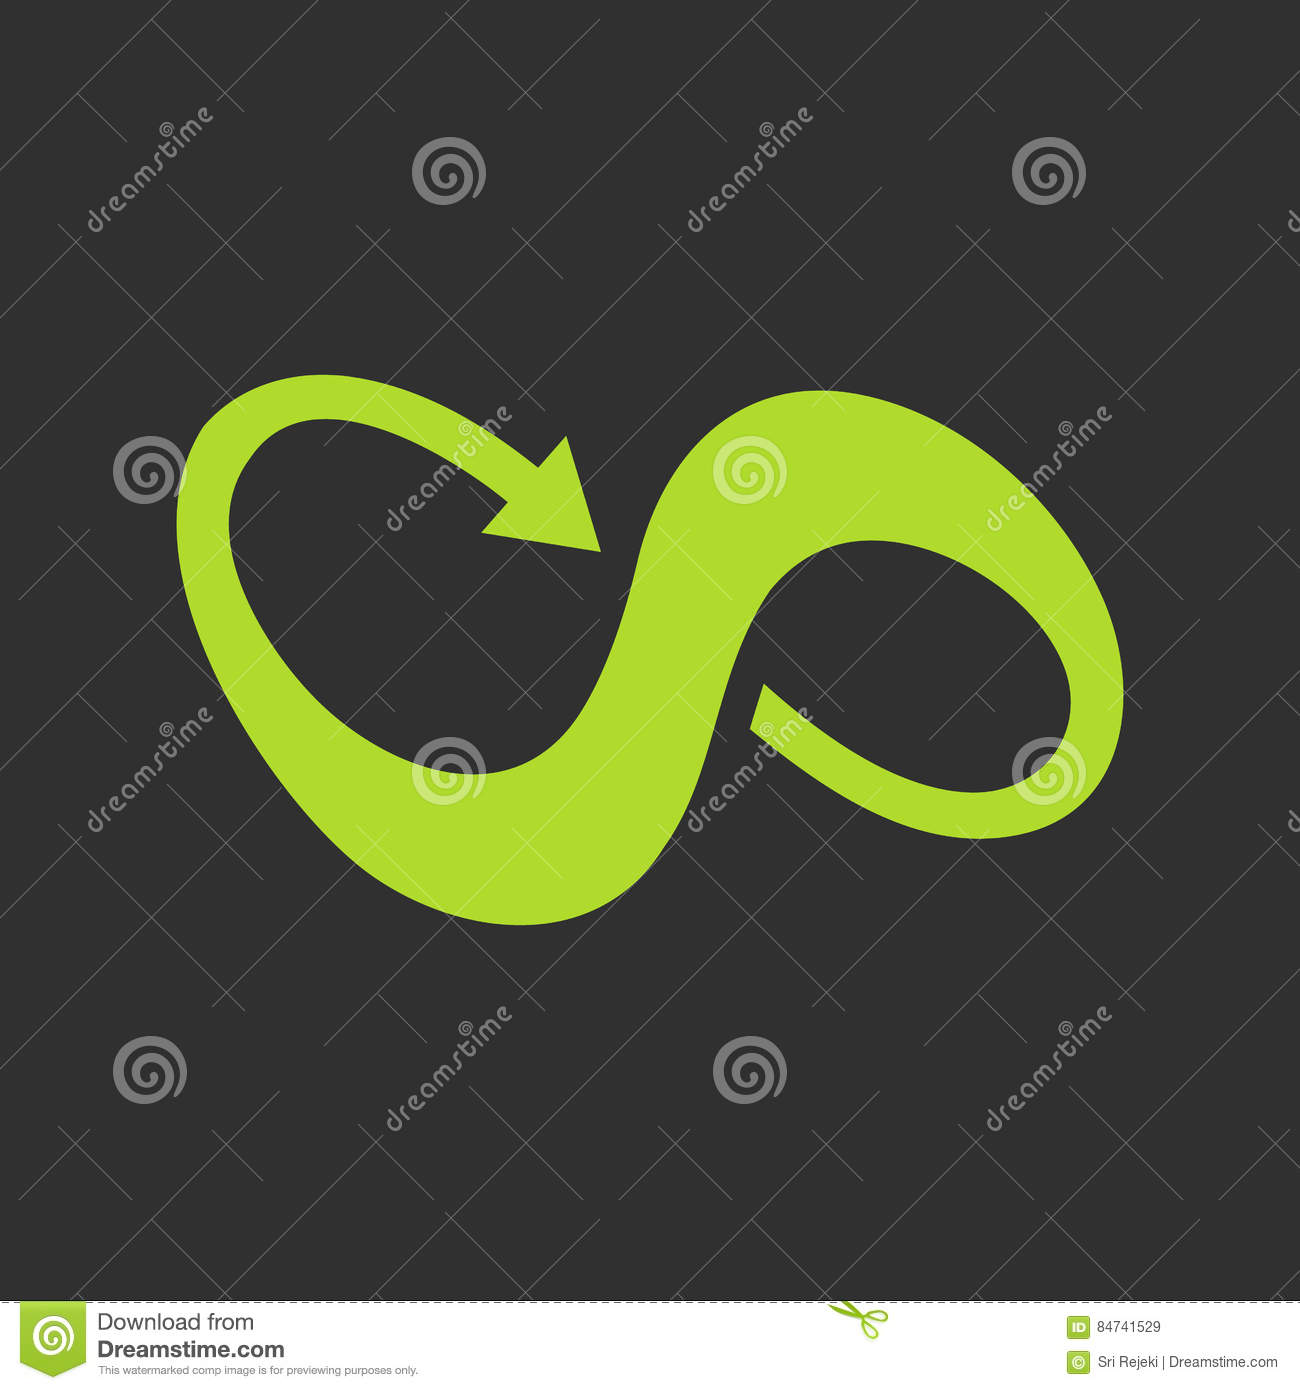 Infinity Symbol With Arrow Stock Vector Illustration Of Background 84741529 Animated, back to top, scroll down, simple and for boxes. infinity symbol with arrow stock vector illustration of background 84741529